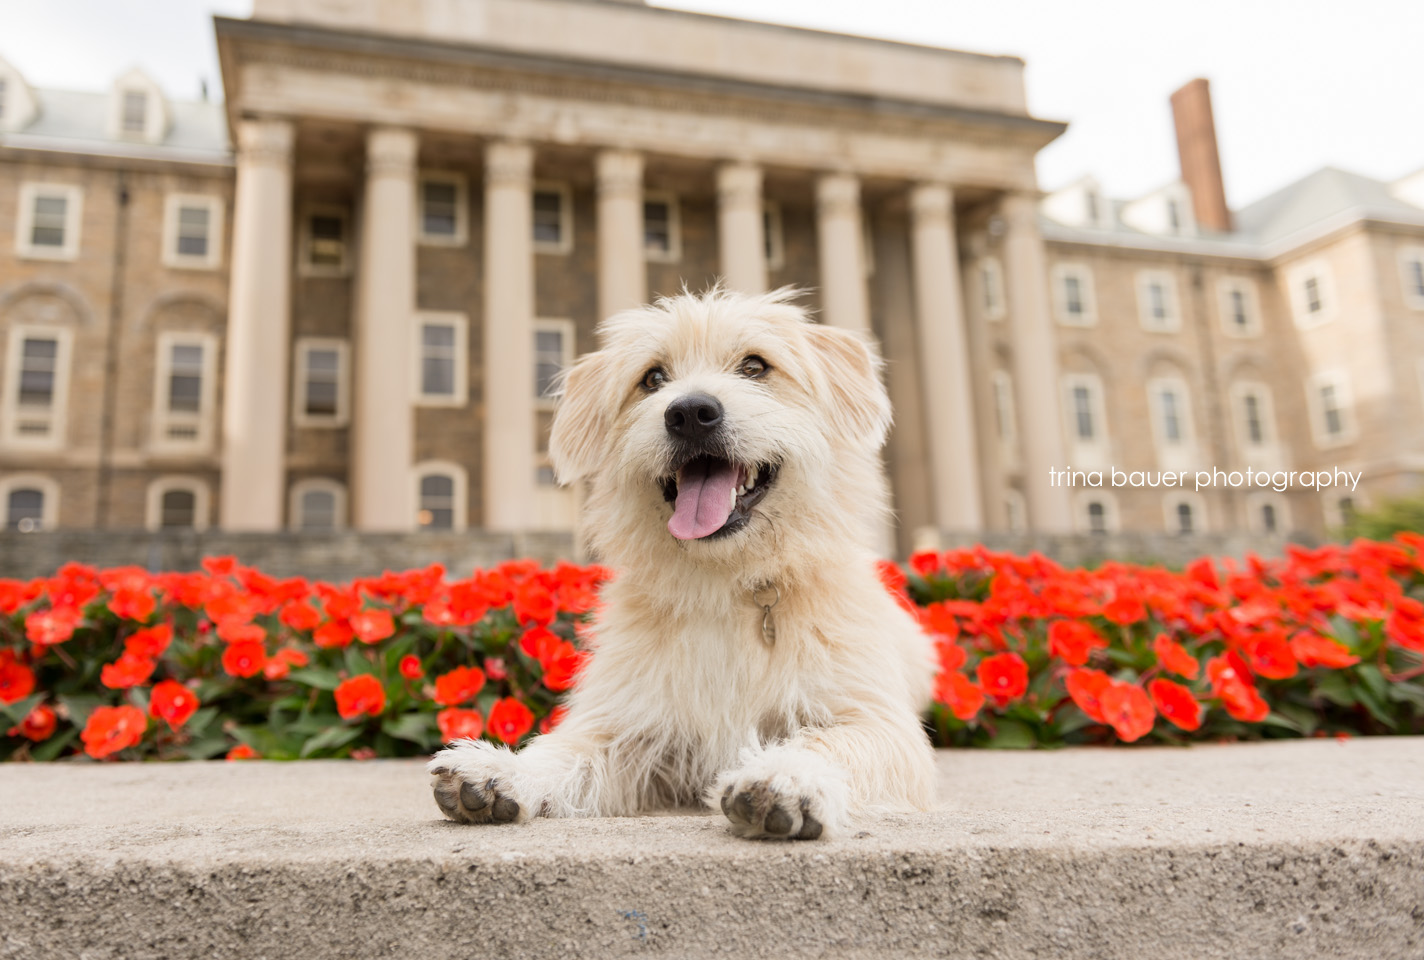 trina.bauer.photography.dog.Penn.State.Old.Main.jpg